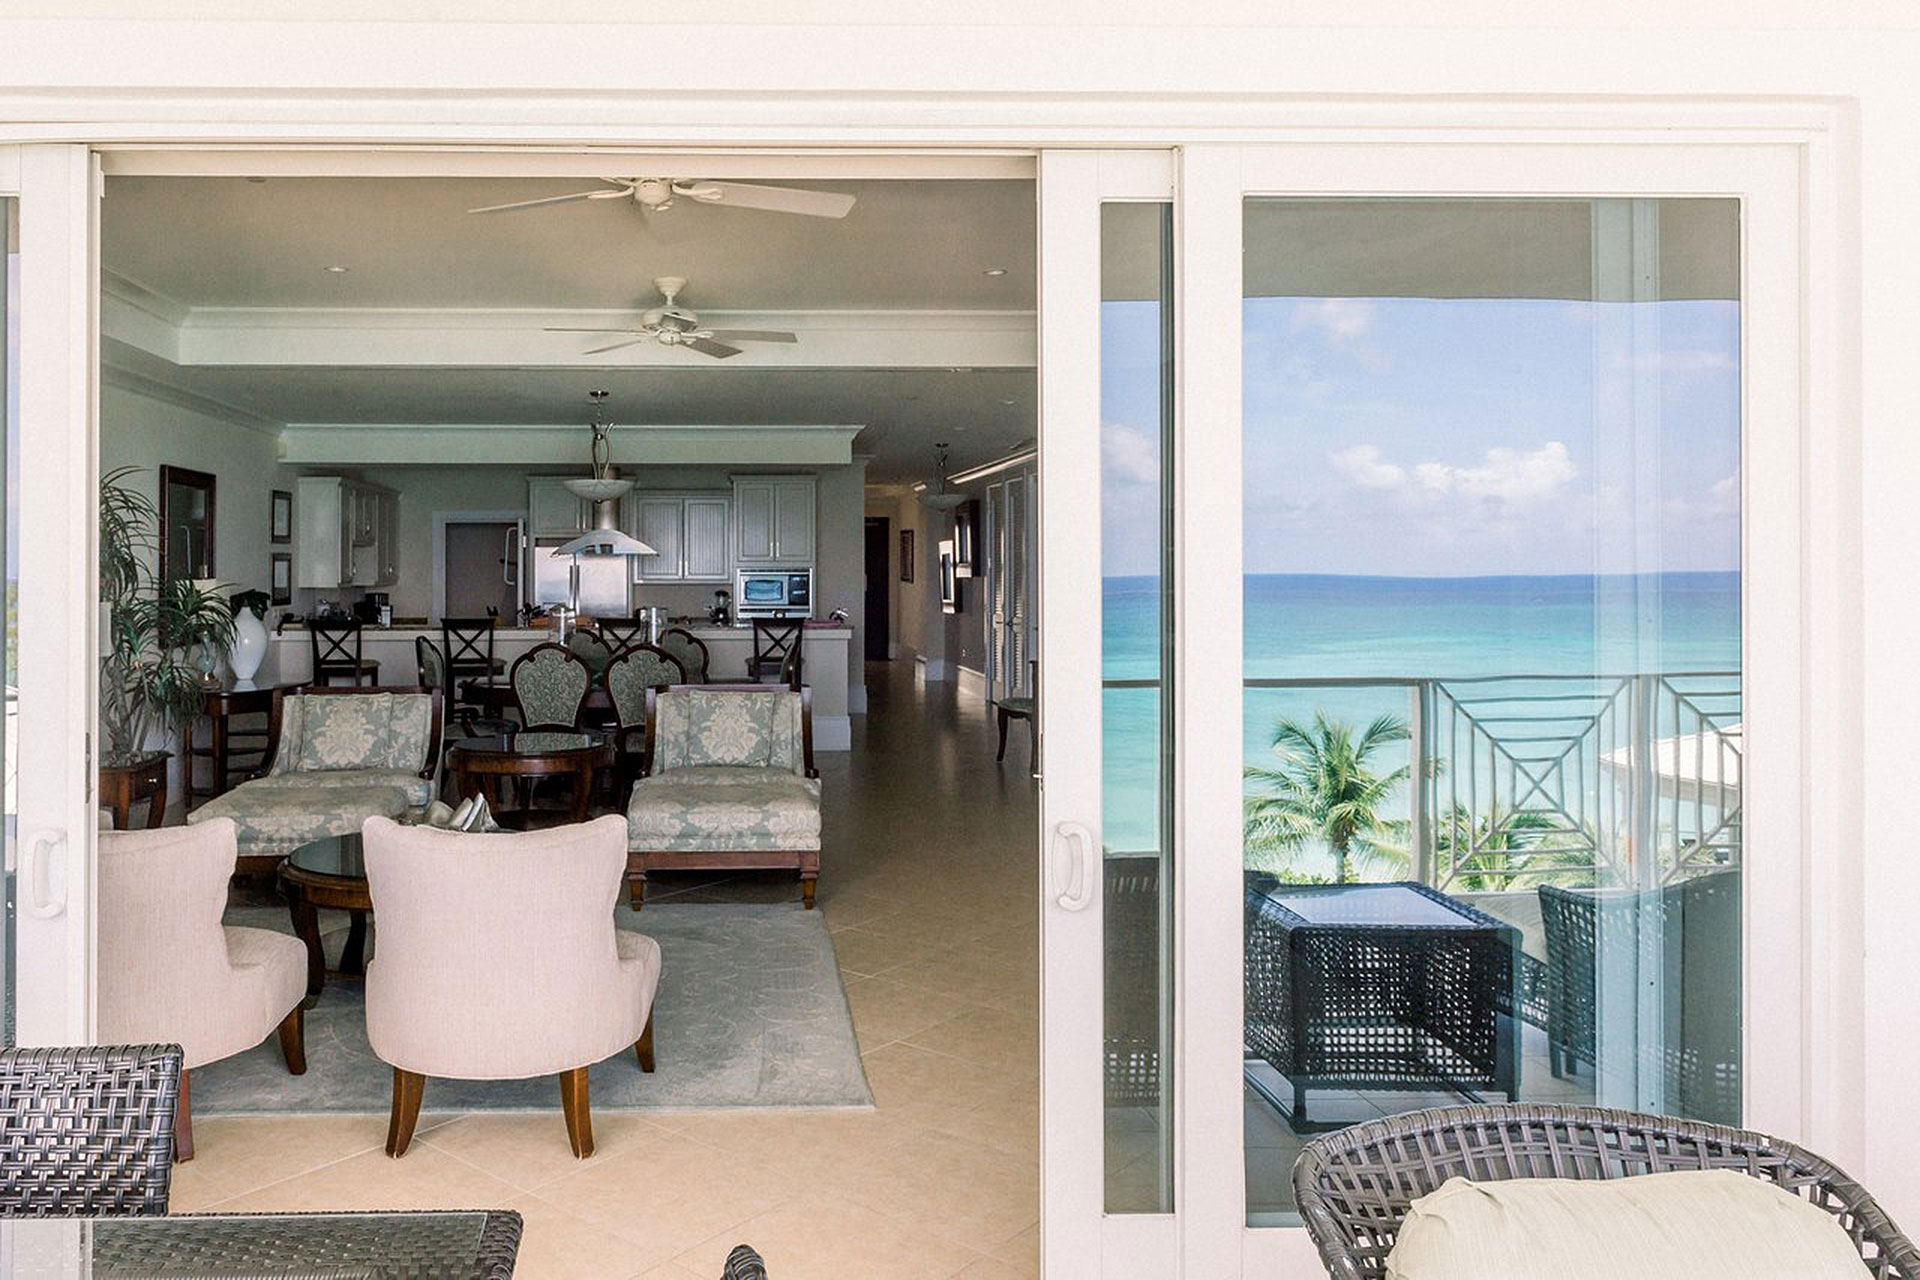 Caribbean Club Luxury Boutique Hotel in Grand Cayman; Courtesy of Caribbean Club Luxury Boutique Hotel